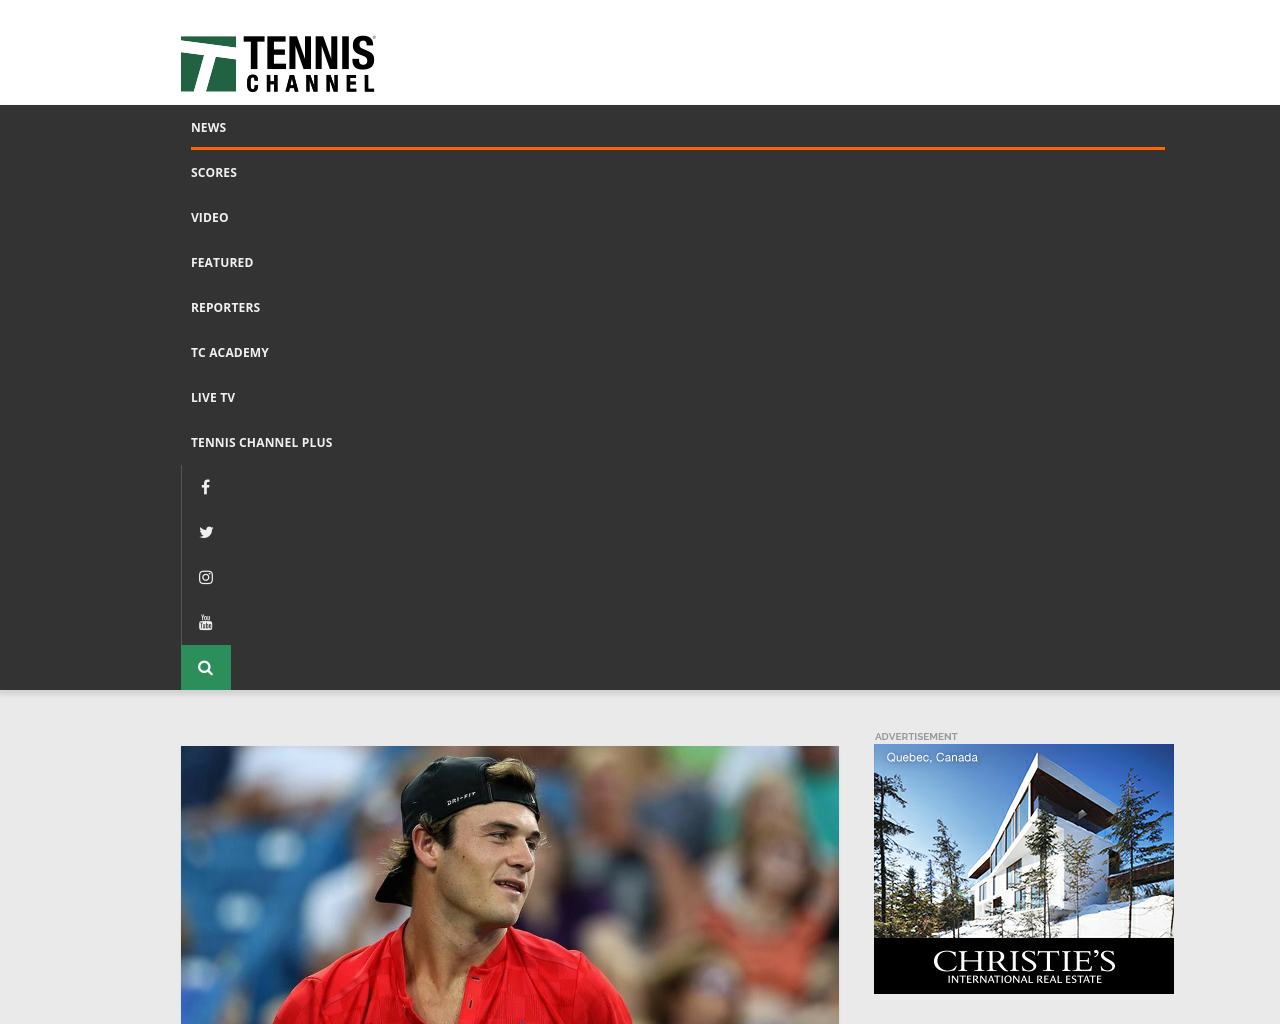 Tennis-Channel-Advertising-Reviews-Pricing